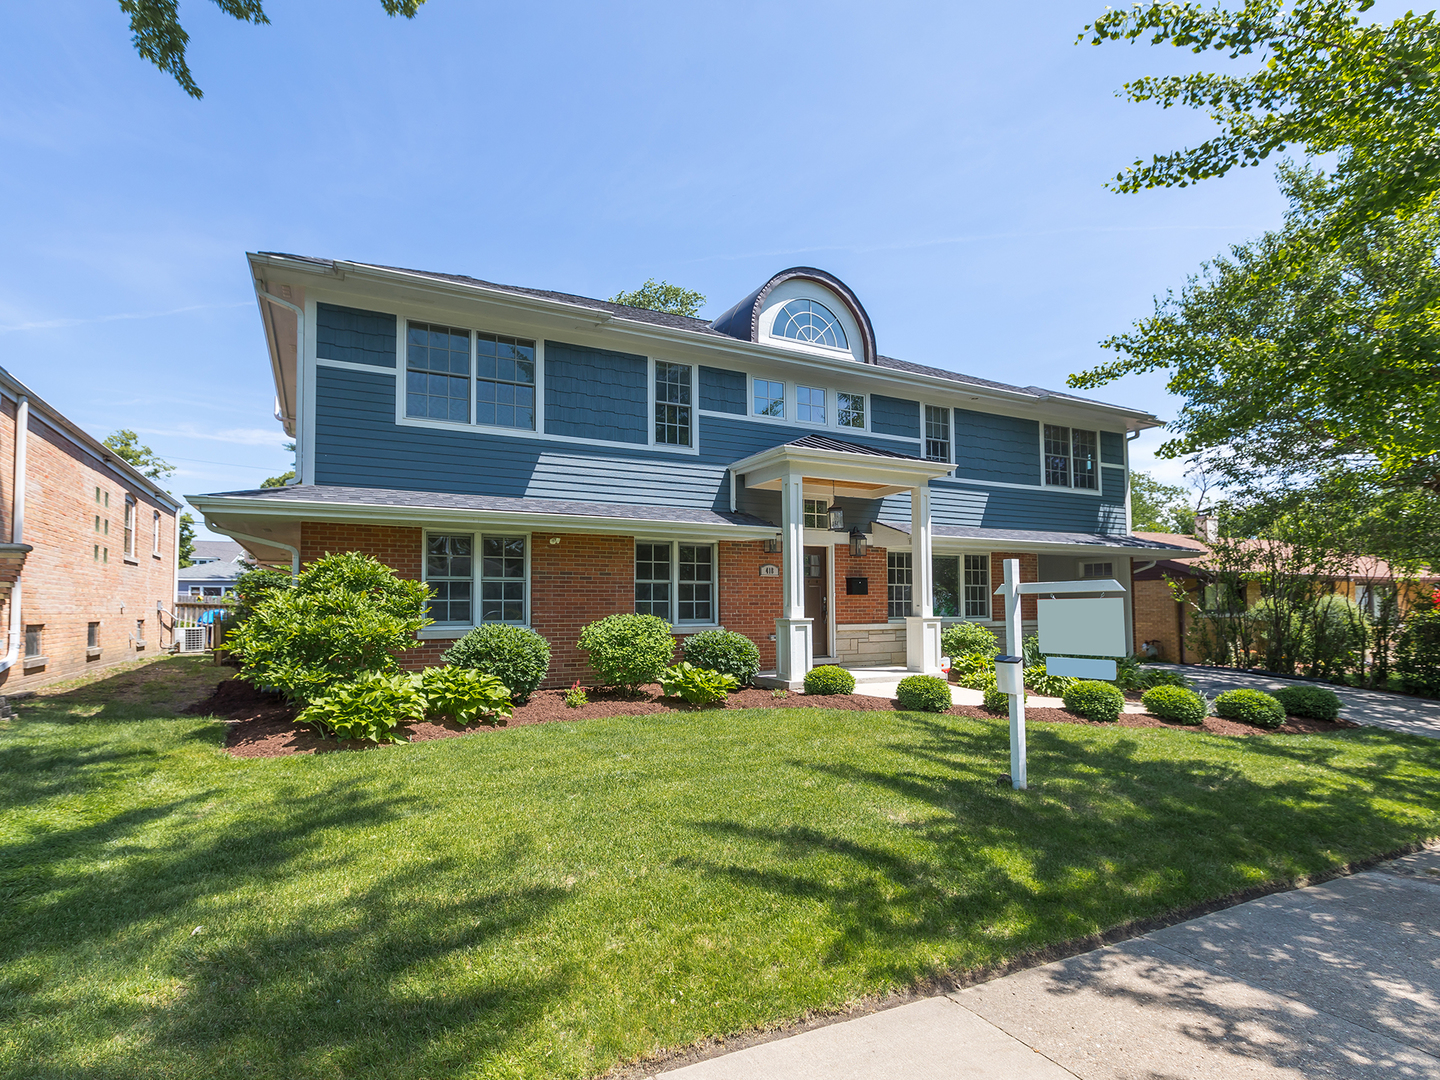 Photo for 418 Austin Street, DOWNERS GROVE, IL 60515 (MLS # 10439253)